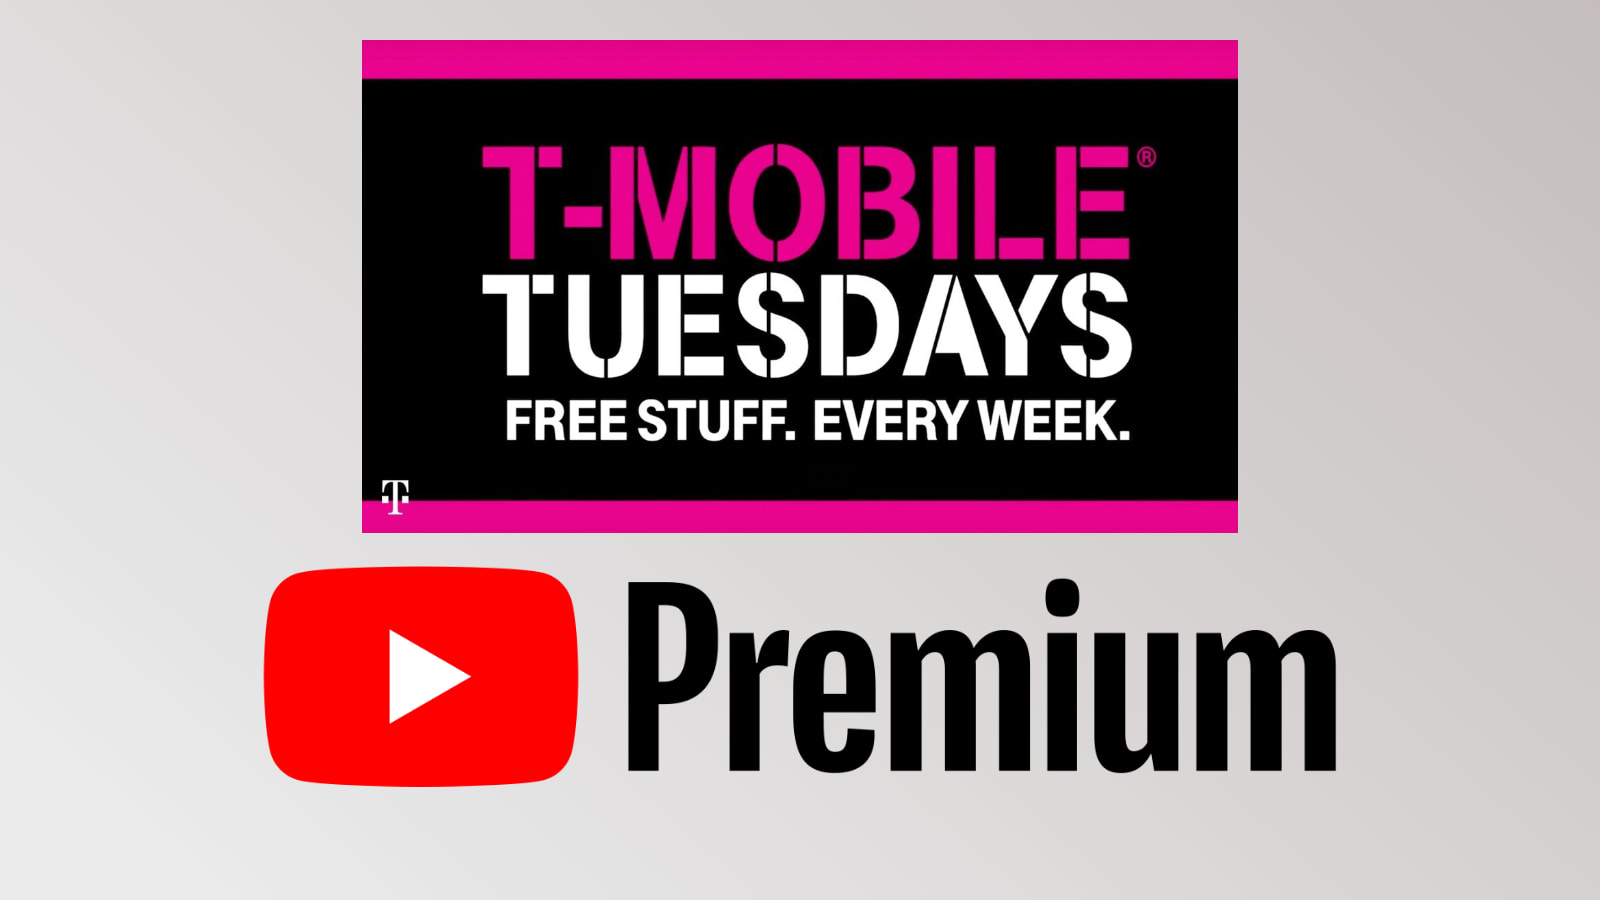 T-Mobile customers! Act fast and get 2 months of YouTube Premium for free